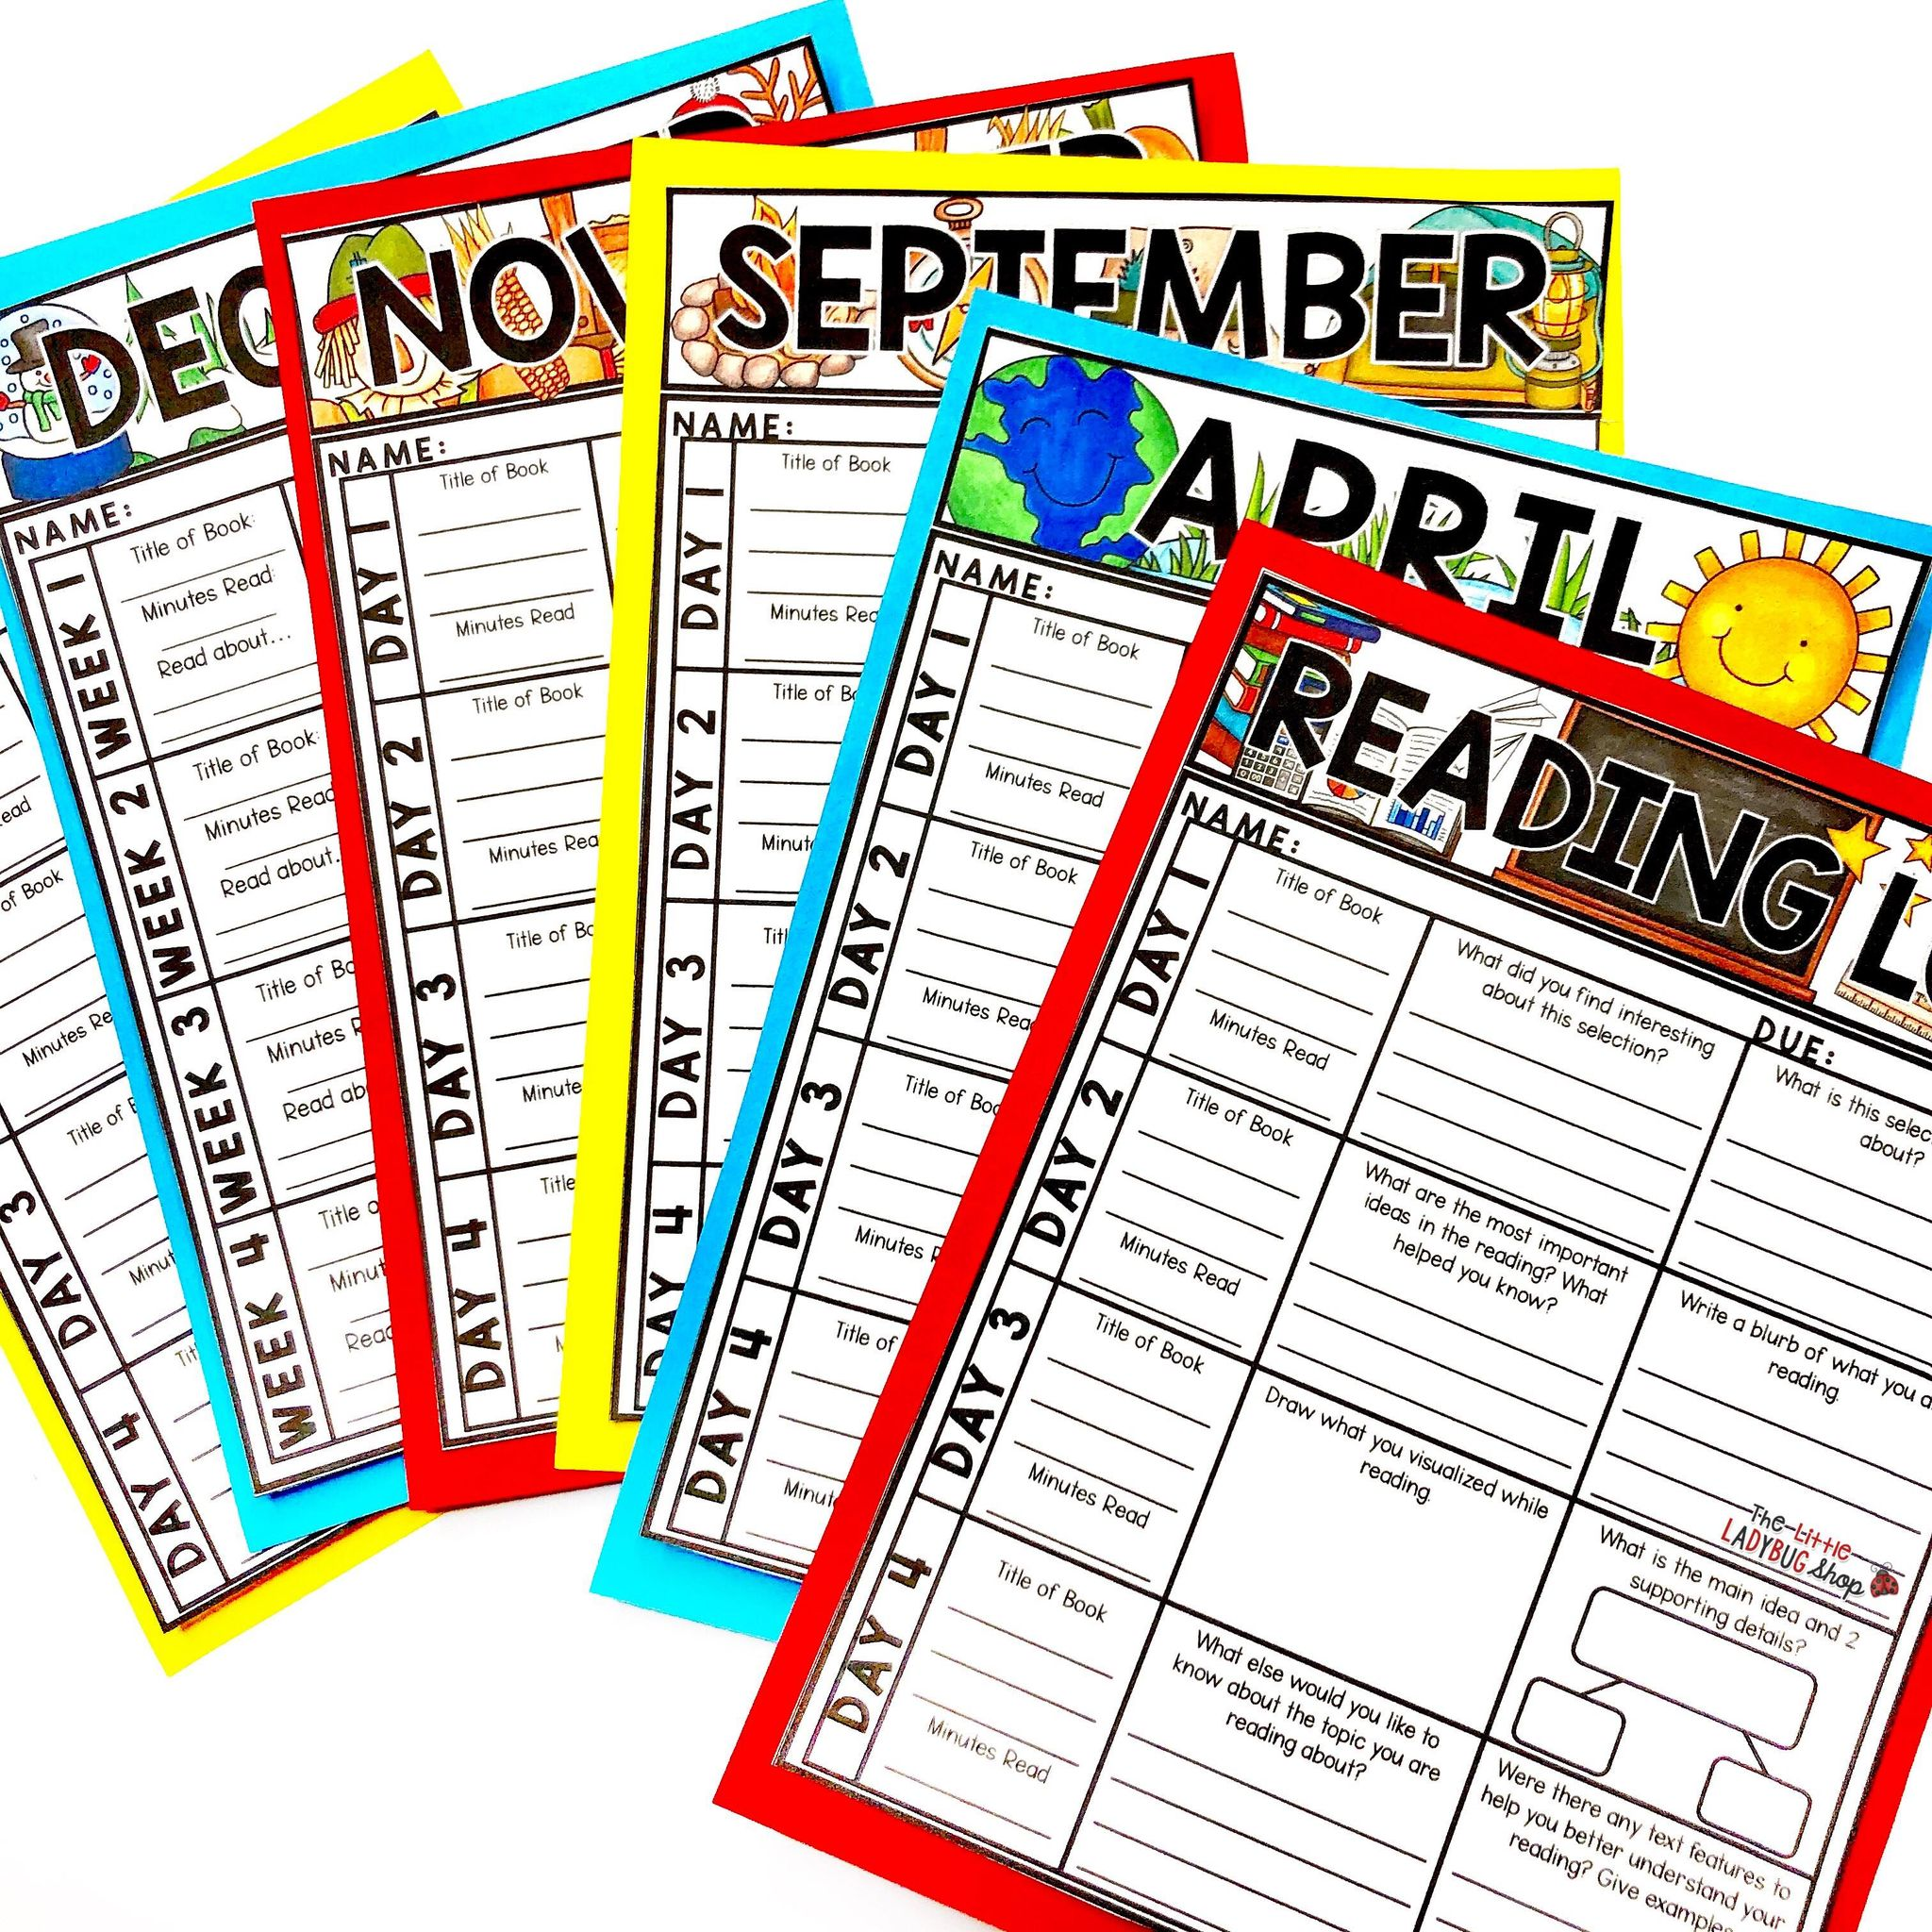 Using Fiction & Nonfiction Reading Logs in Upper Elementary